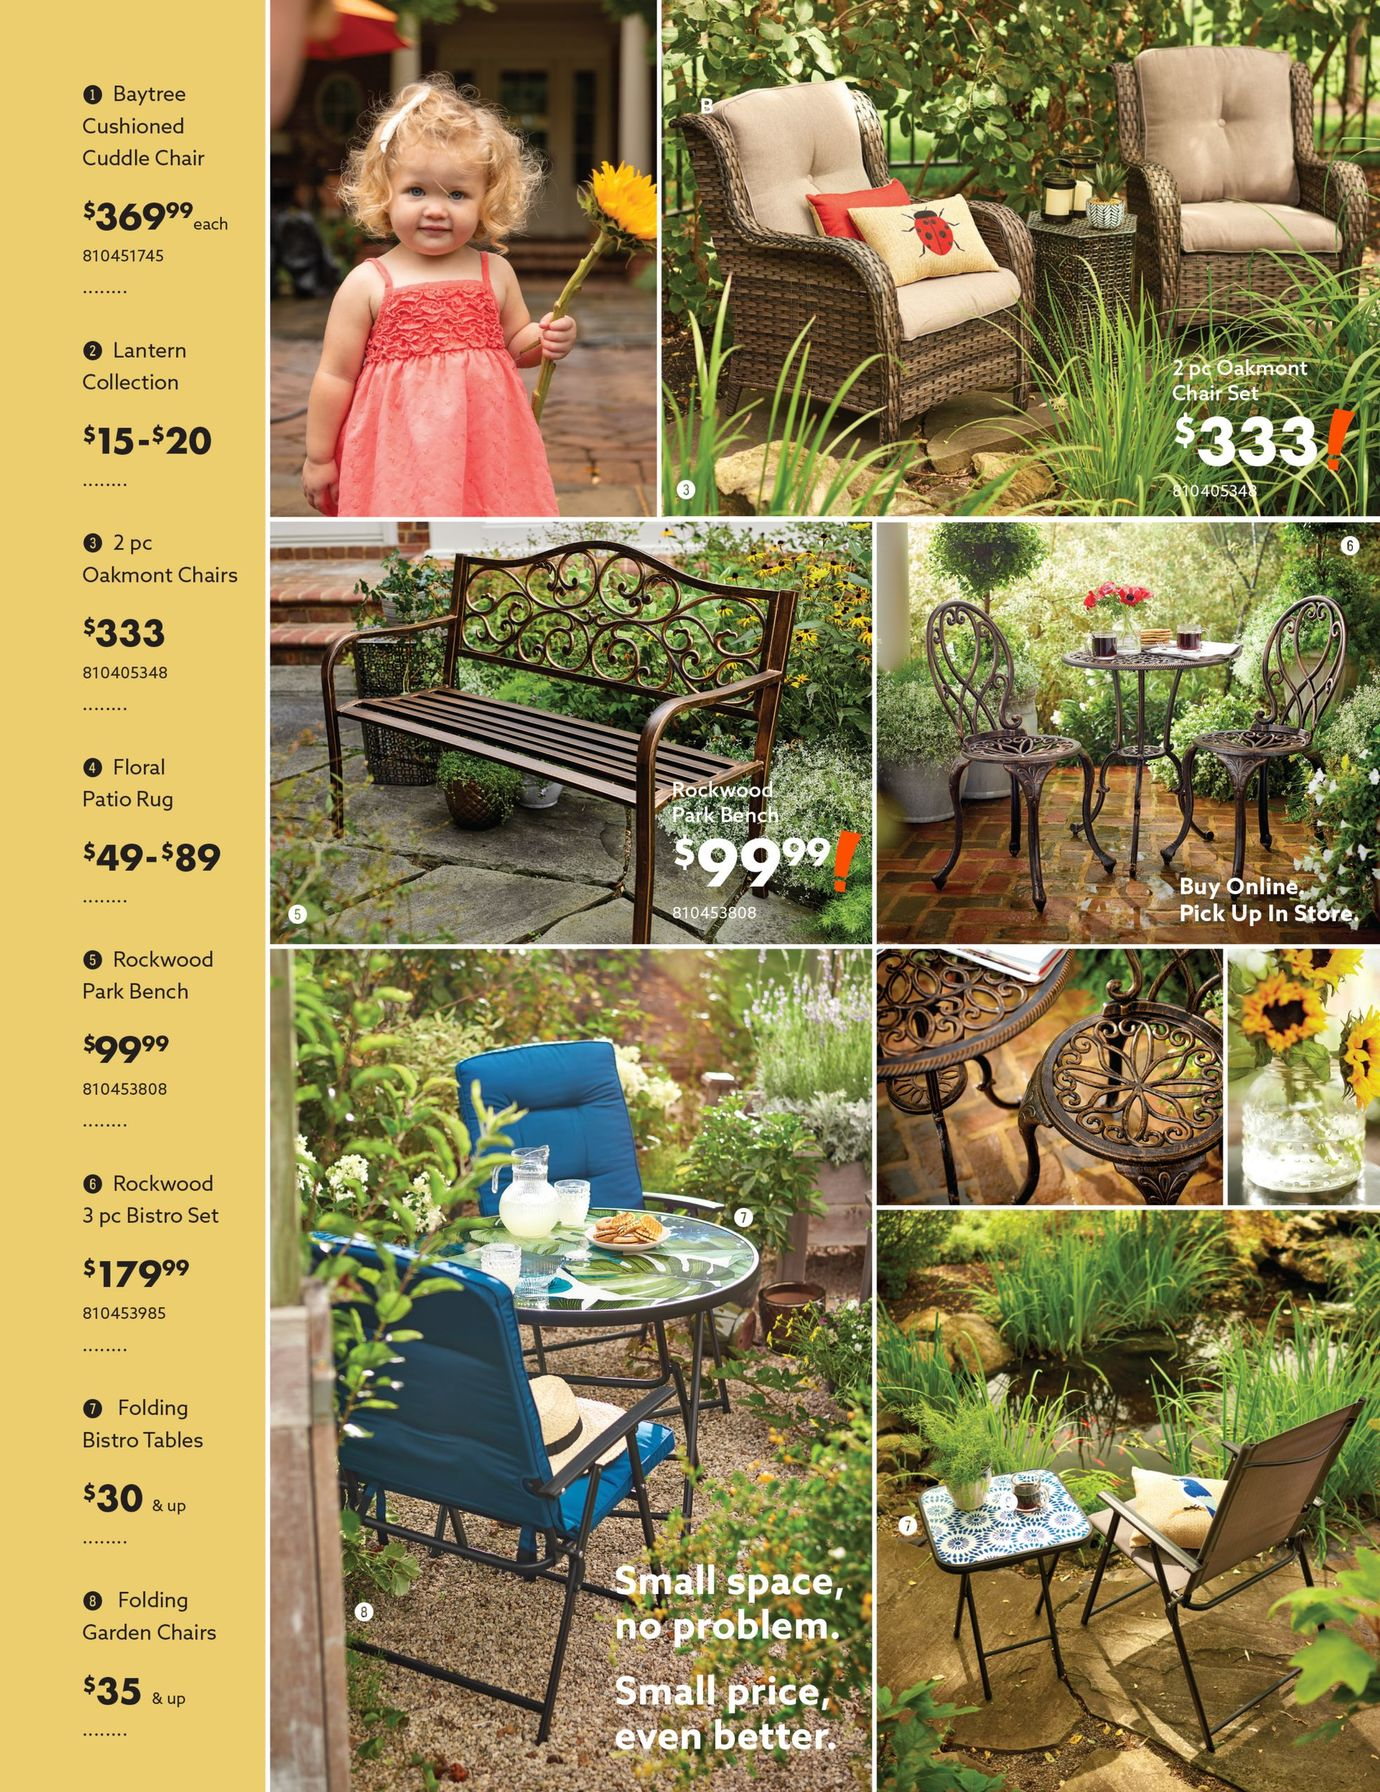 Big Lots Weekly January 19 - July 31, 2020 Page 31